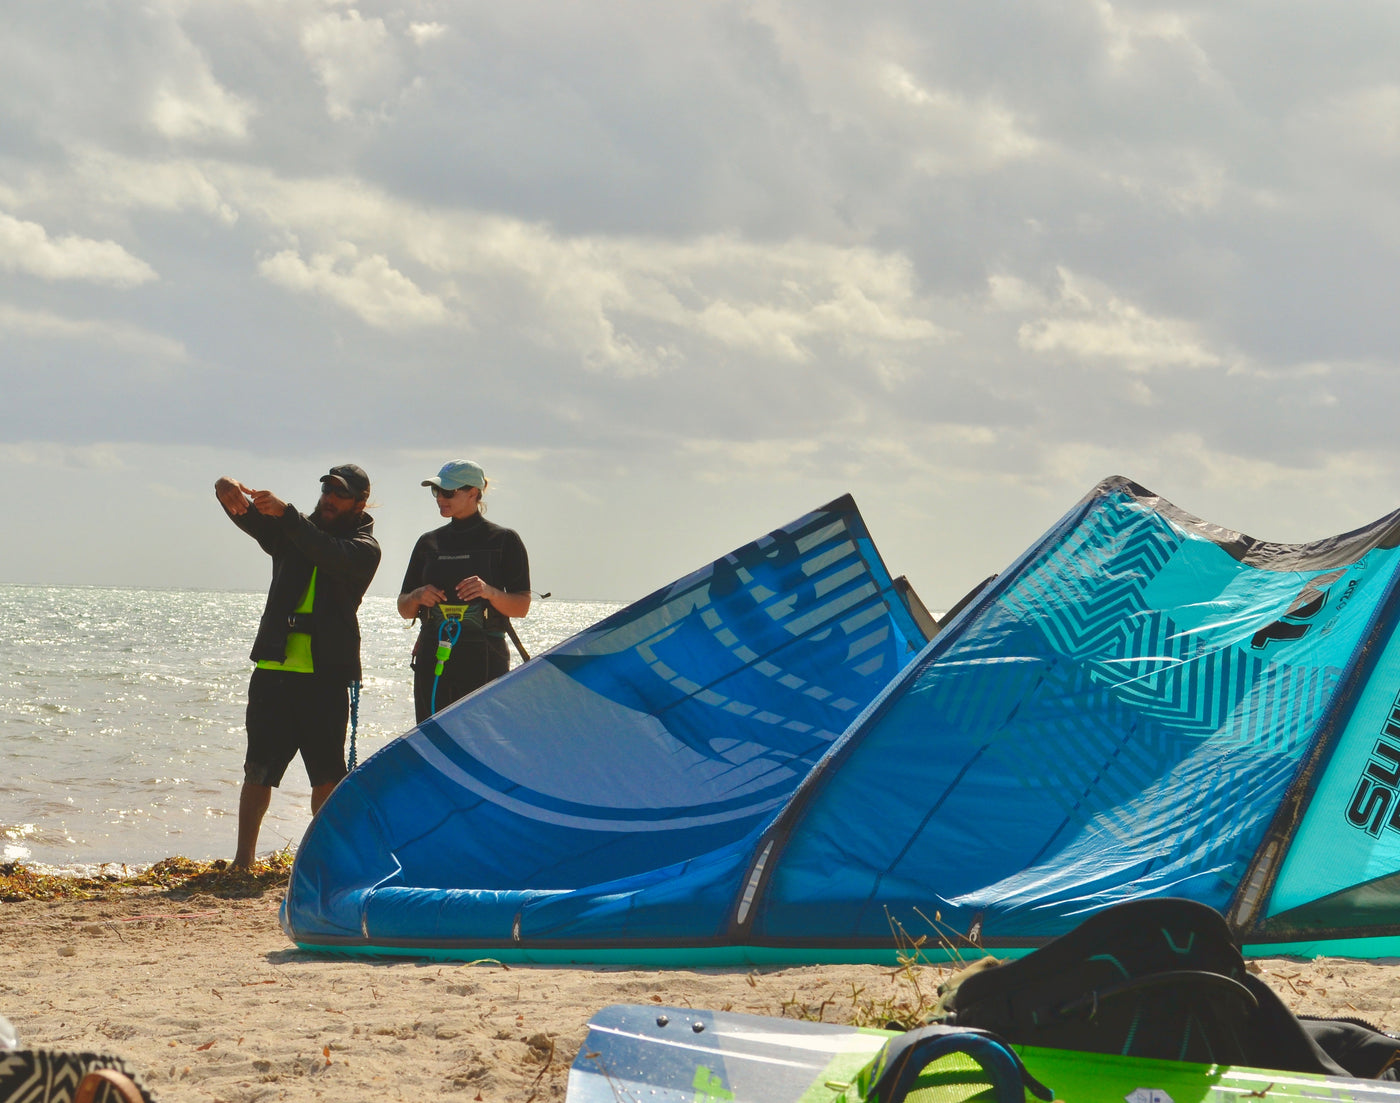 cabrinha kiteboards kiteboard size chart best kiteboarding gear kitesurfing gear for beginners 2017 kiteboarding gear clearance kites kiteboarding bundles kiteline snowkite kite big winds used gear used kiteboarding hood river kiteboarding big winds coupo